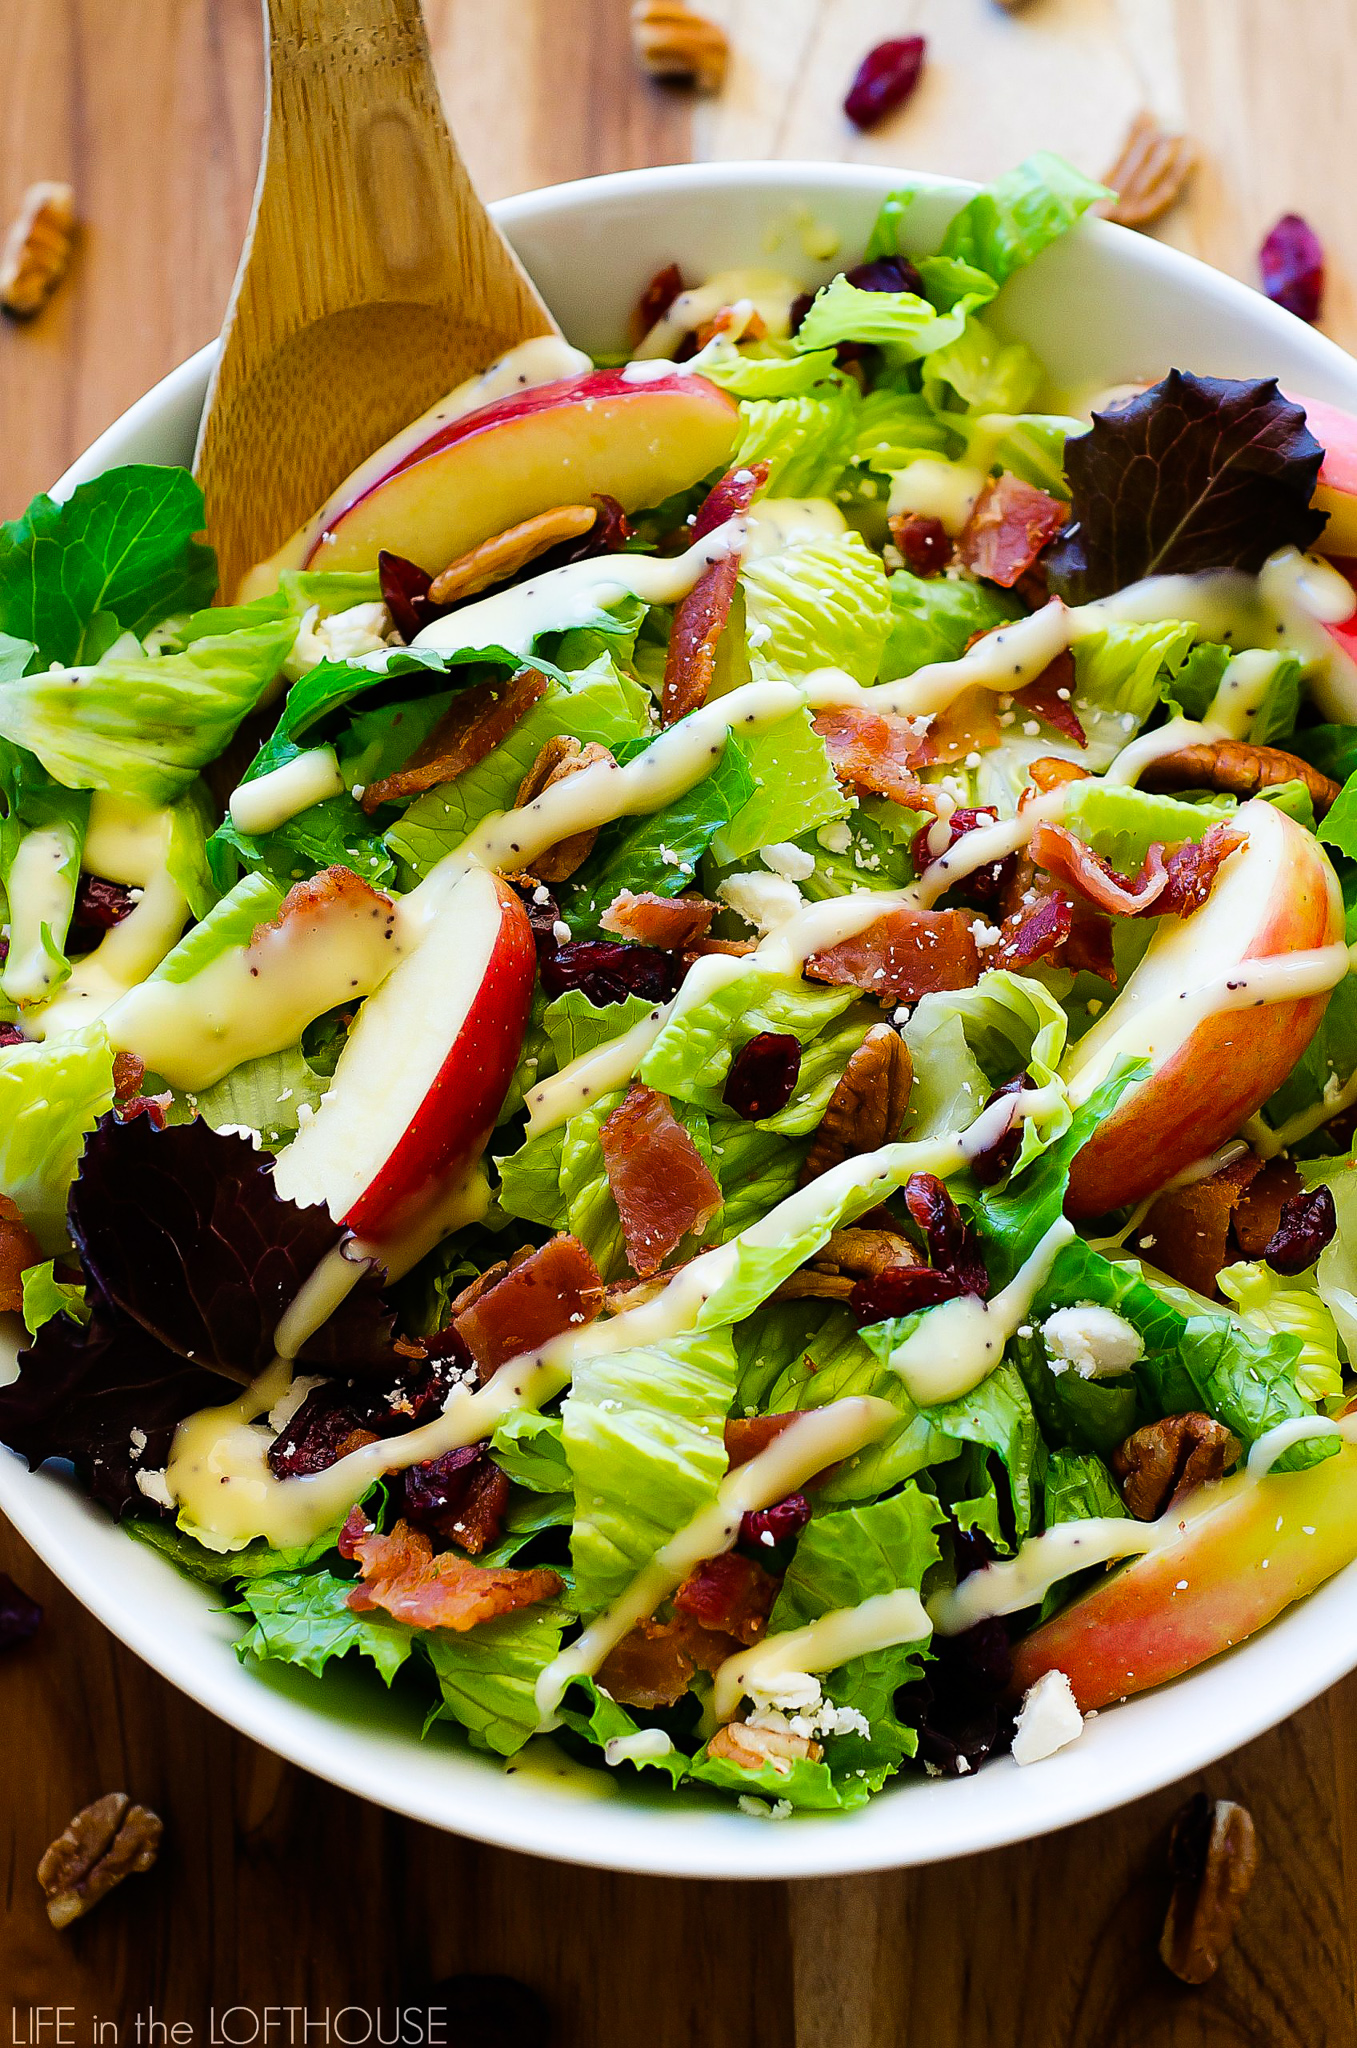 Autumn chopped salad is filled with chopped leafy greens, apples, cranberries, bacon, pecans and feta cheese. Life-in-the-Lofthouse.com